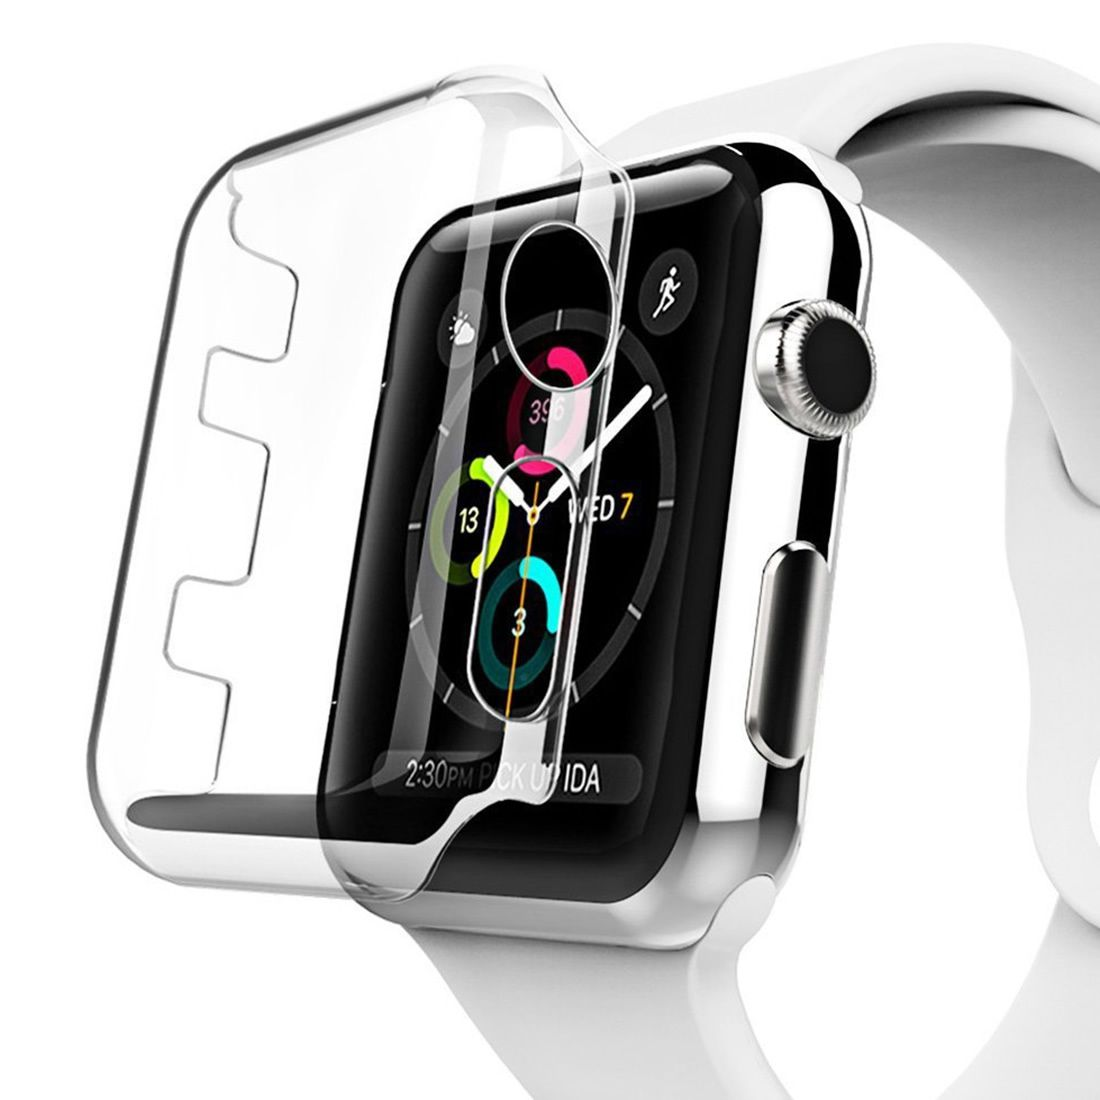 Capa Protetora de Acrílico para Apple Watch 42mm